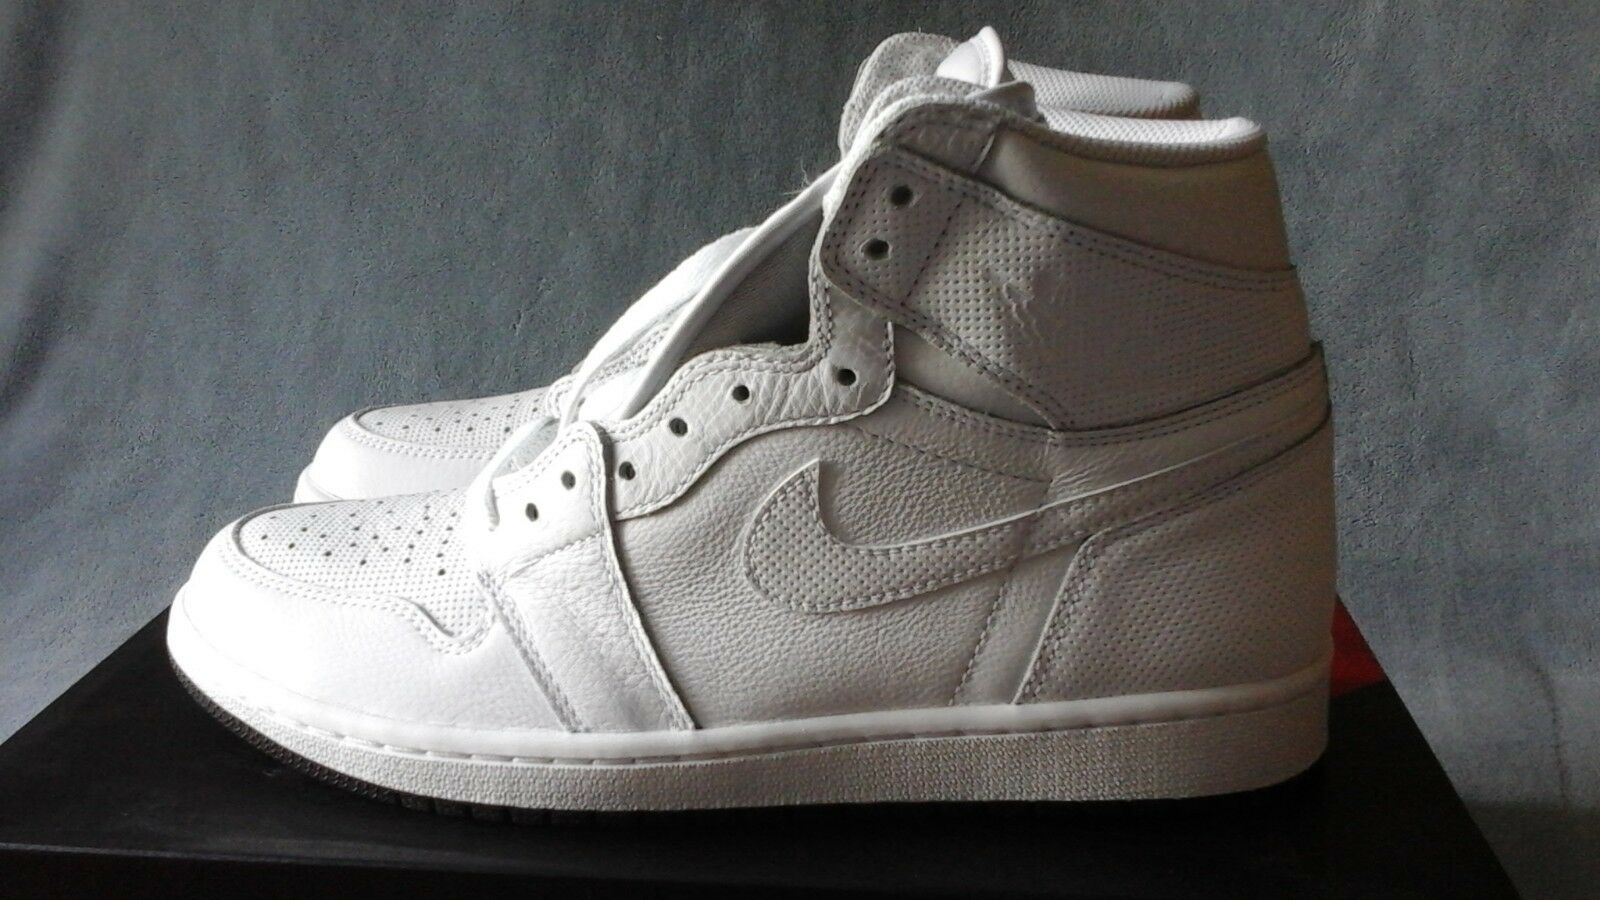 Nike Air blanco Jordan 1 retro High og blanco Air negro 555088-100 comodo 10feb5